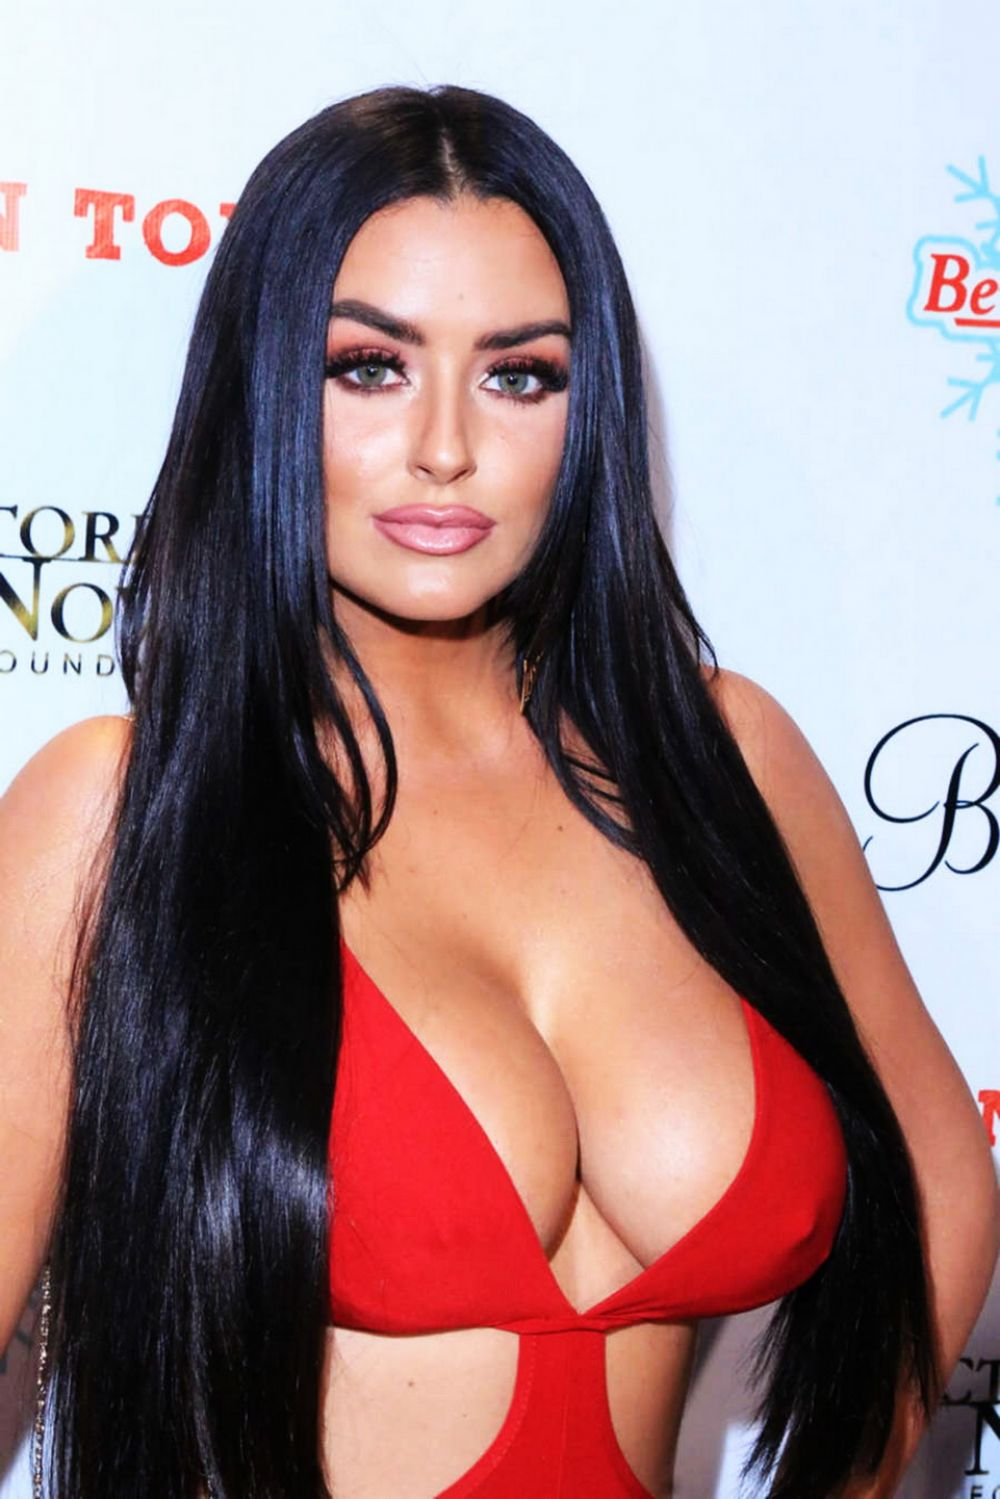 ABIGAIL RATCHFORD at Babes in Toyland Charity Holiday Party in Hollywood 12/15/2015